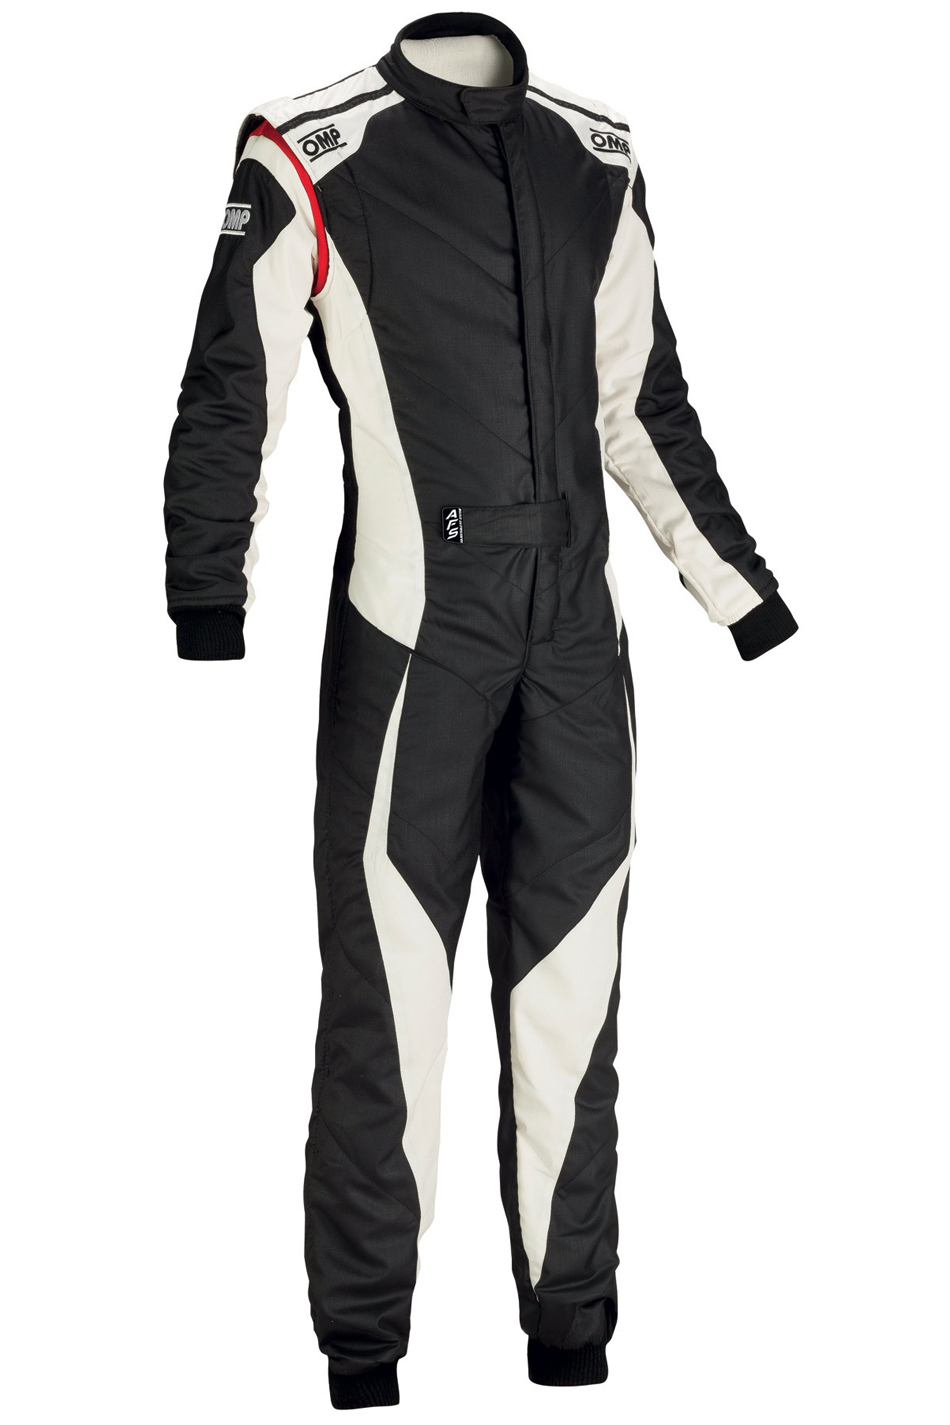 OMP Racing IA0185907654 Suit, Tecnica Evo, Driving, 1 Piece, SFI 3.2A/5, FIA Approved, Double Layer, Fire Retardant Fabric, Black / White, Size 54, Medium / Large, Each